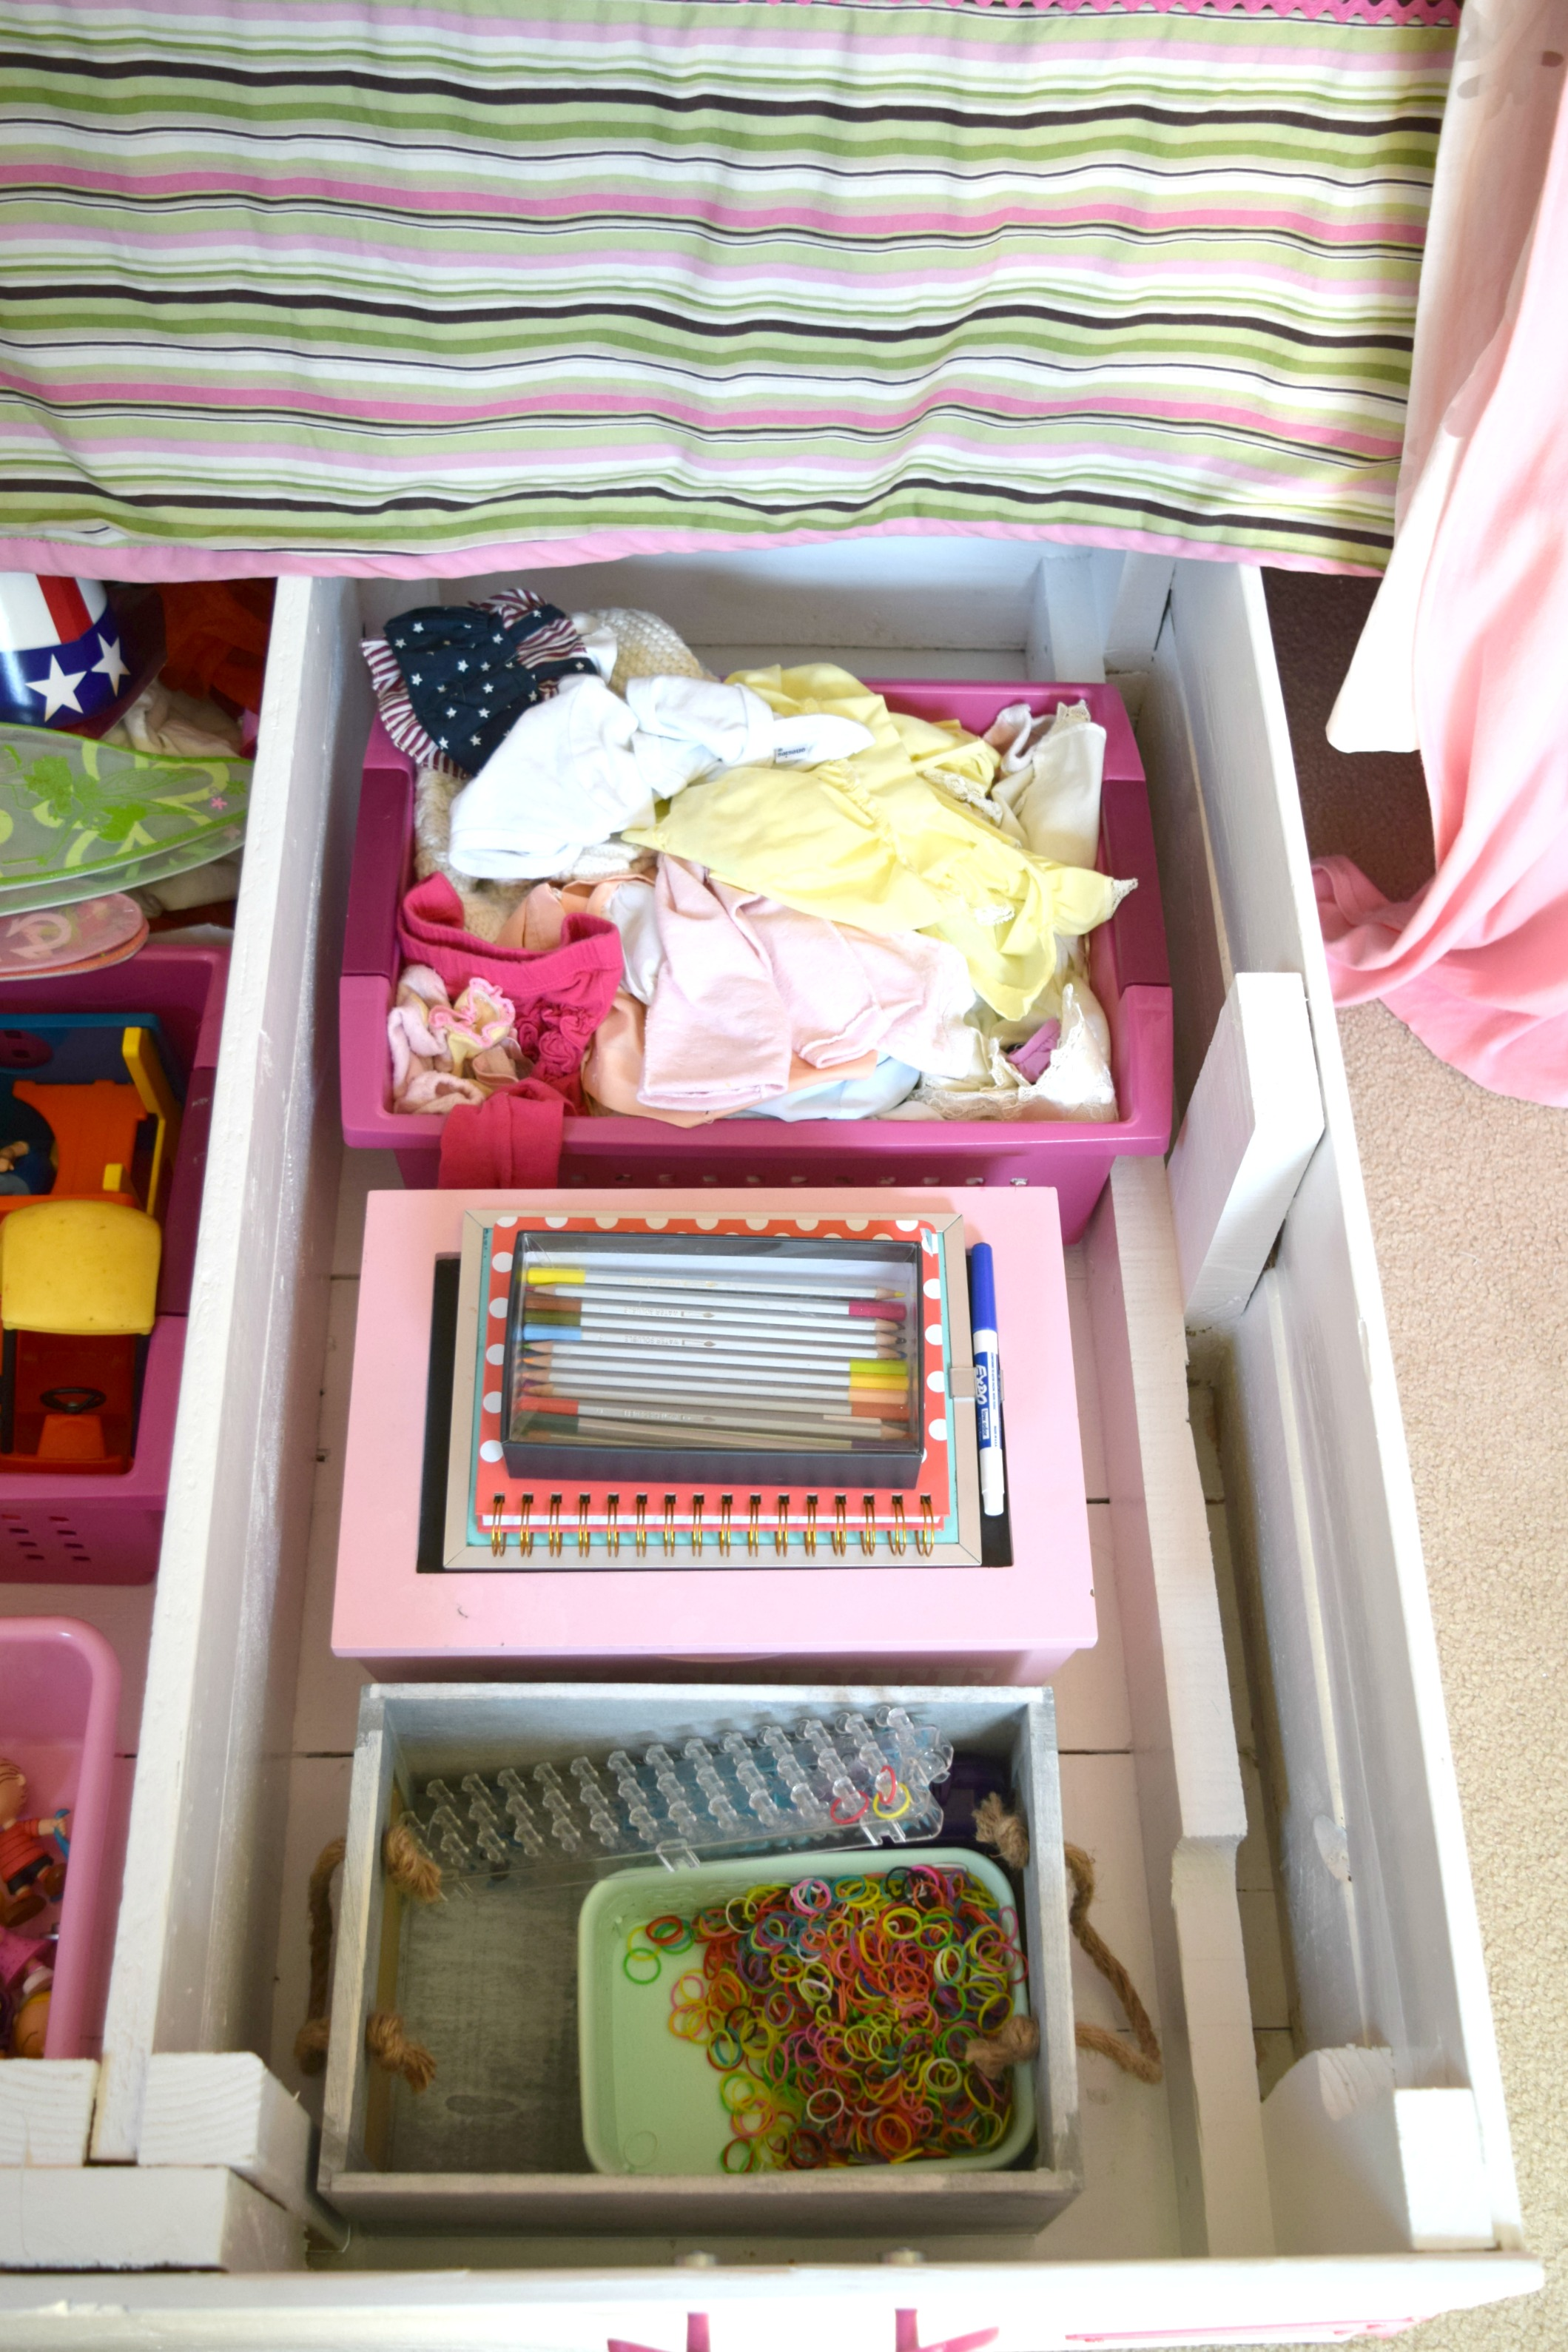 she is able to set in here her doll clothes art supplies and crafts